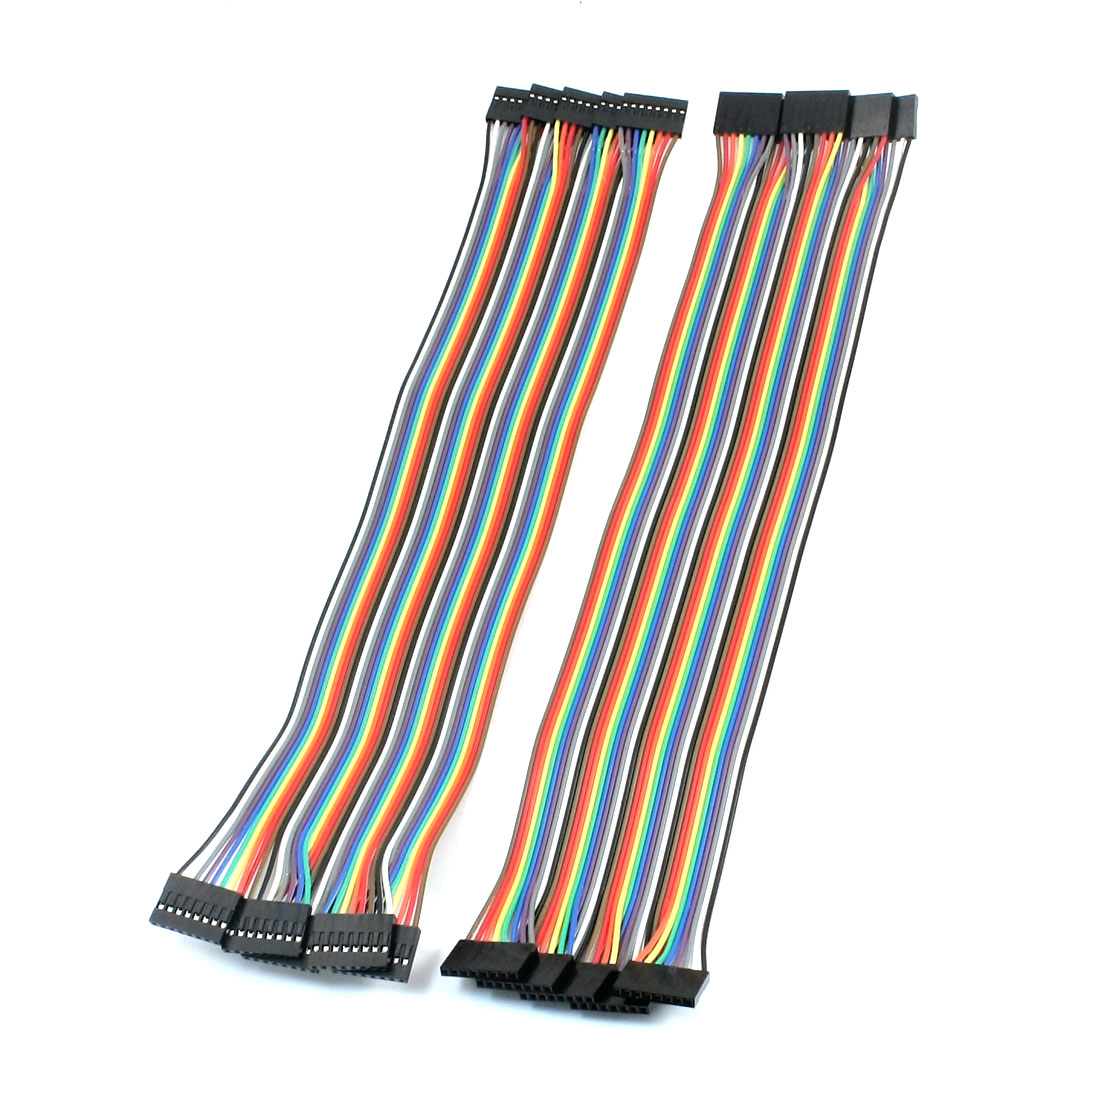 10pcs 8P-8P Female to Female Breadboard Connect Test Jumper Cable Wire 30cm